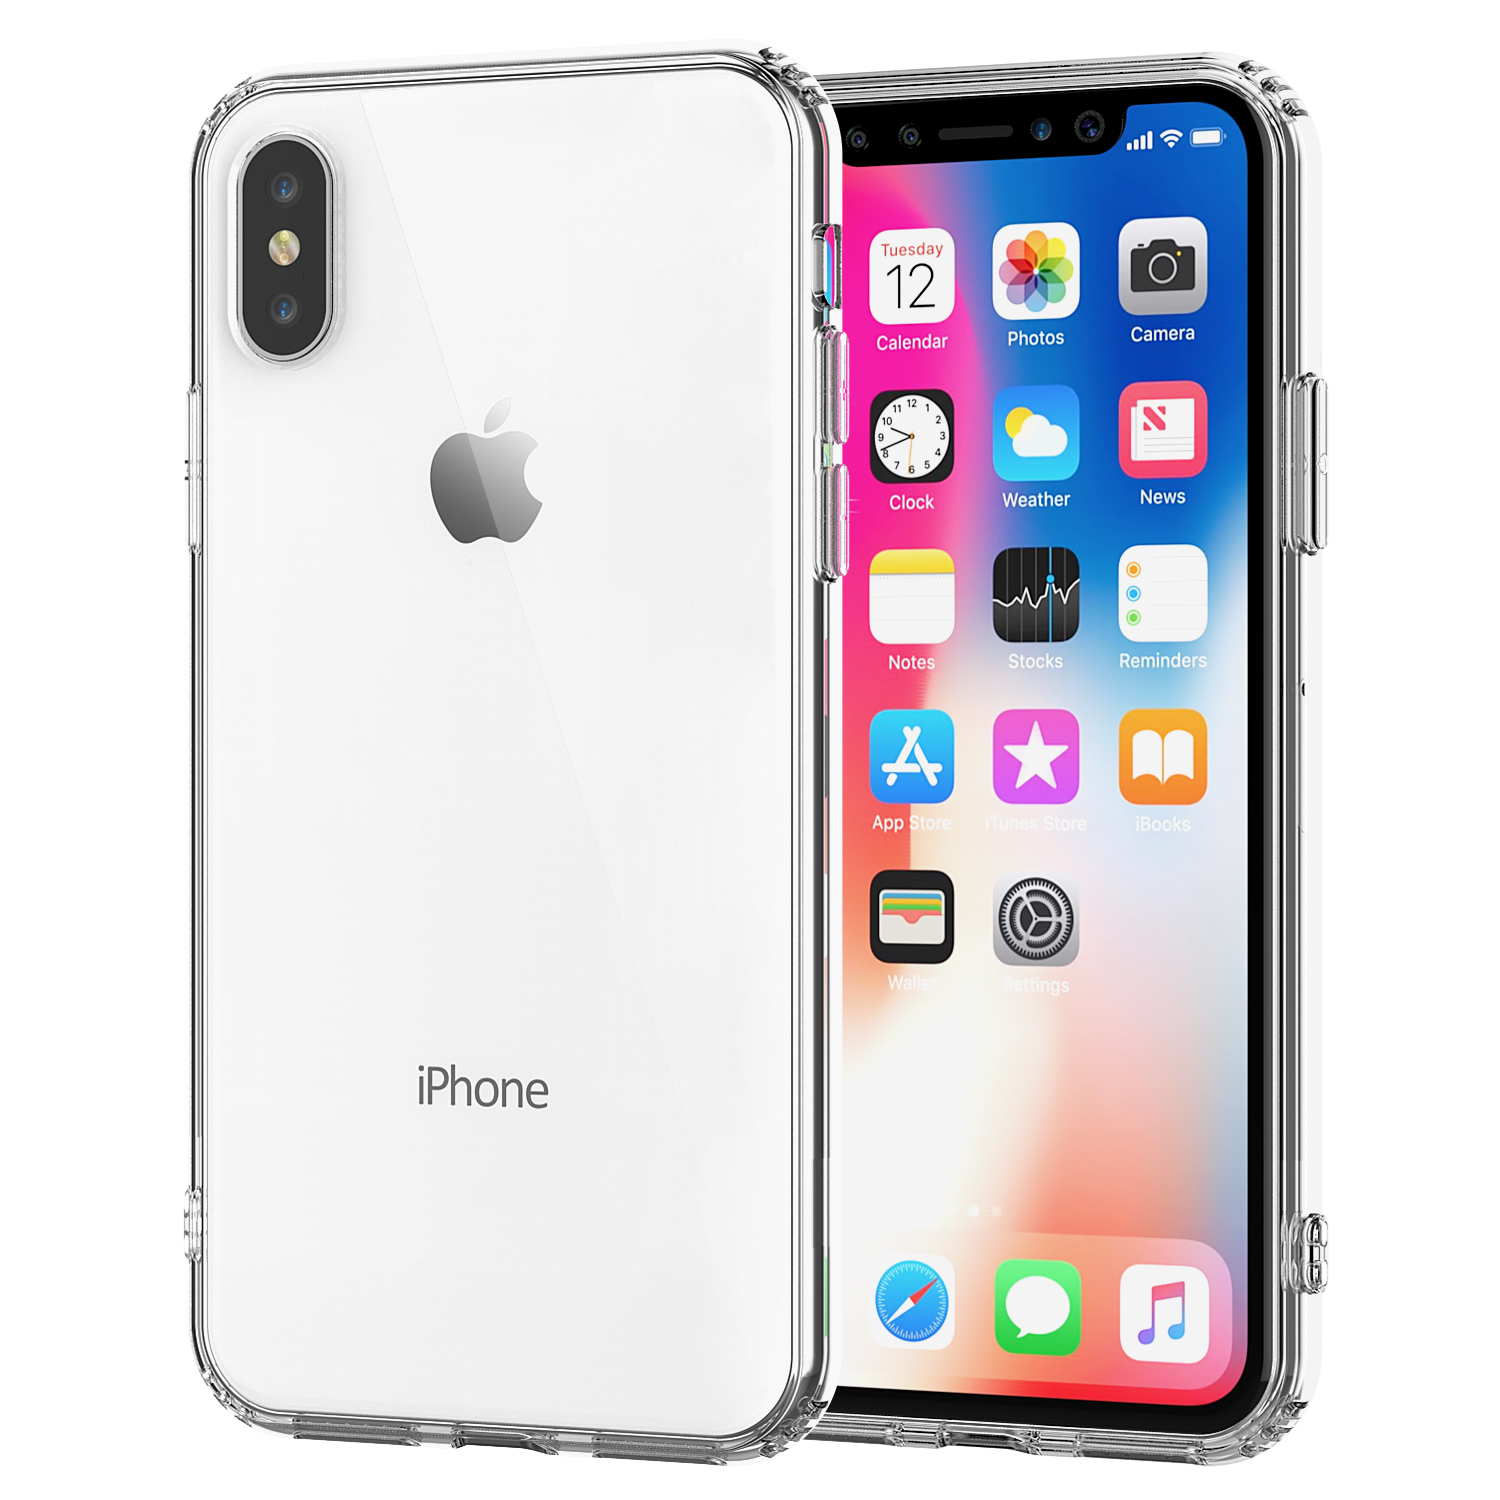 Shamo's Clear Case for iPhone X